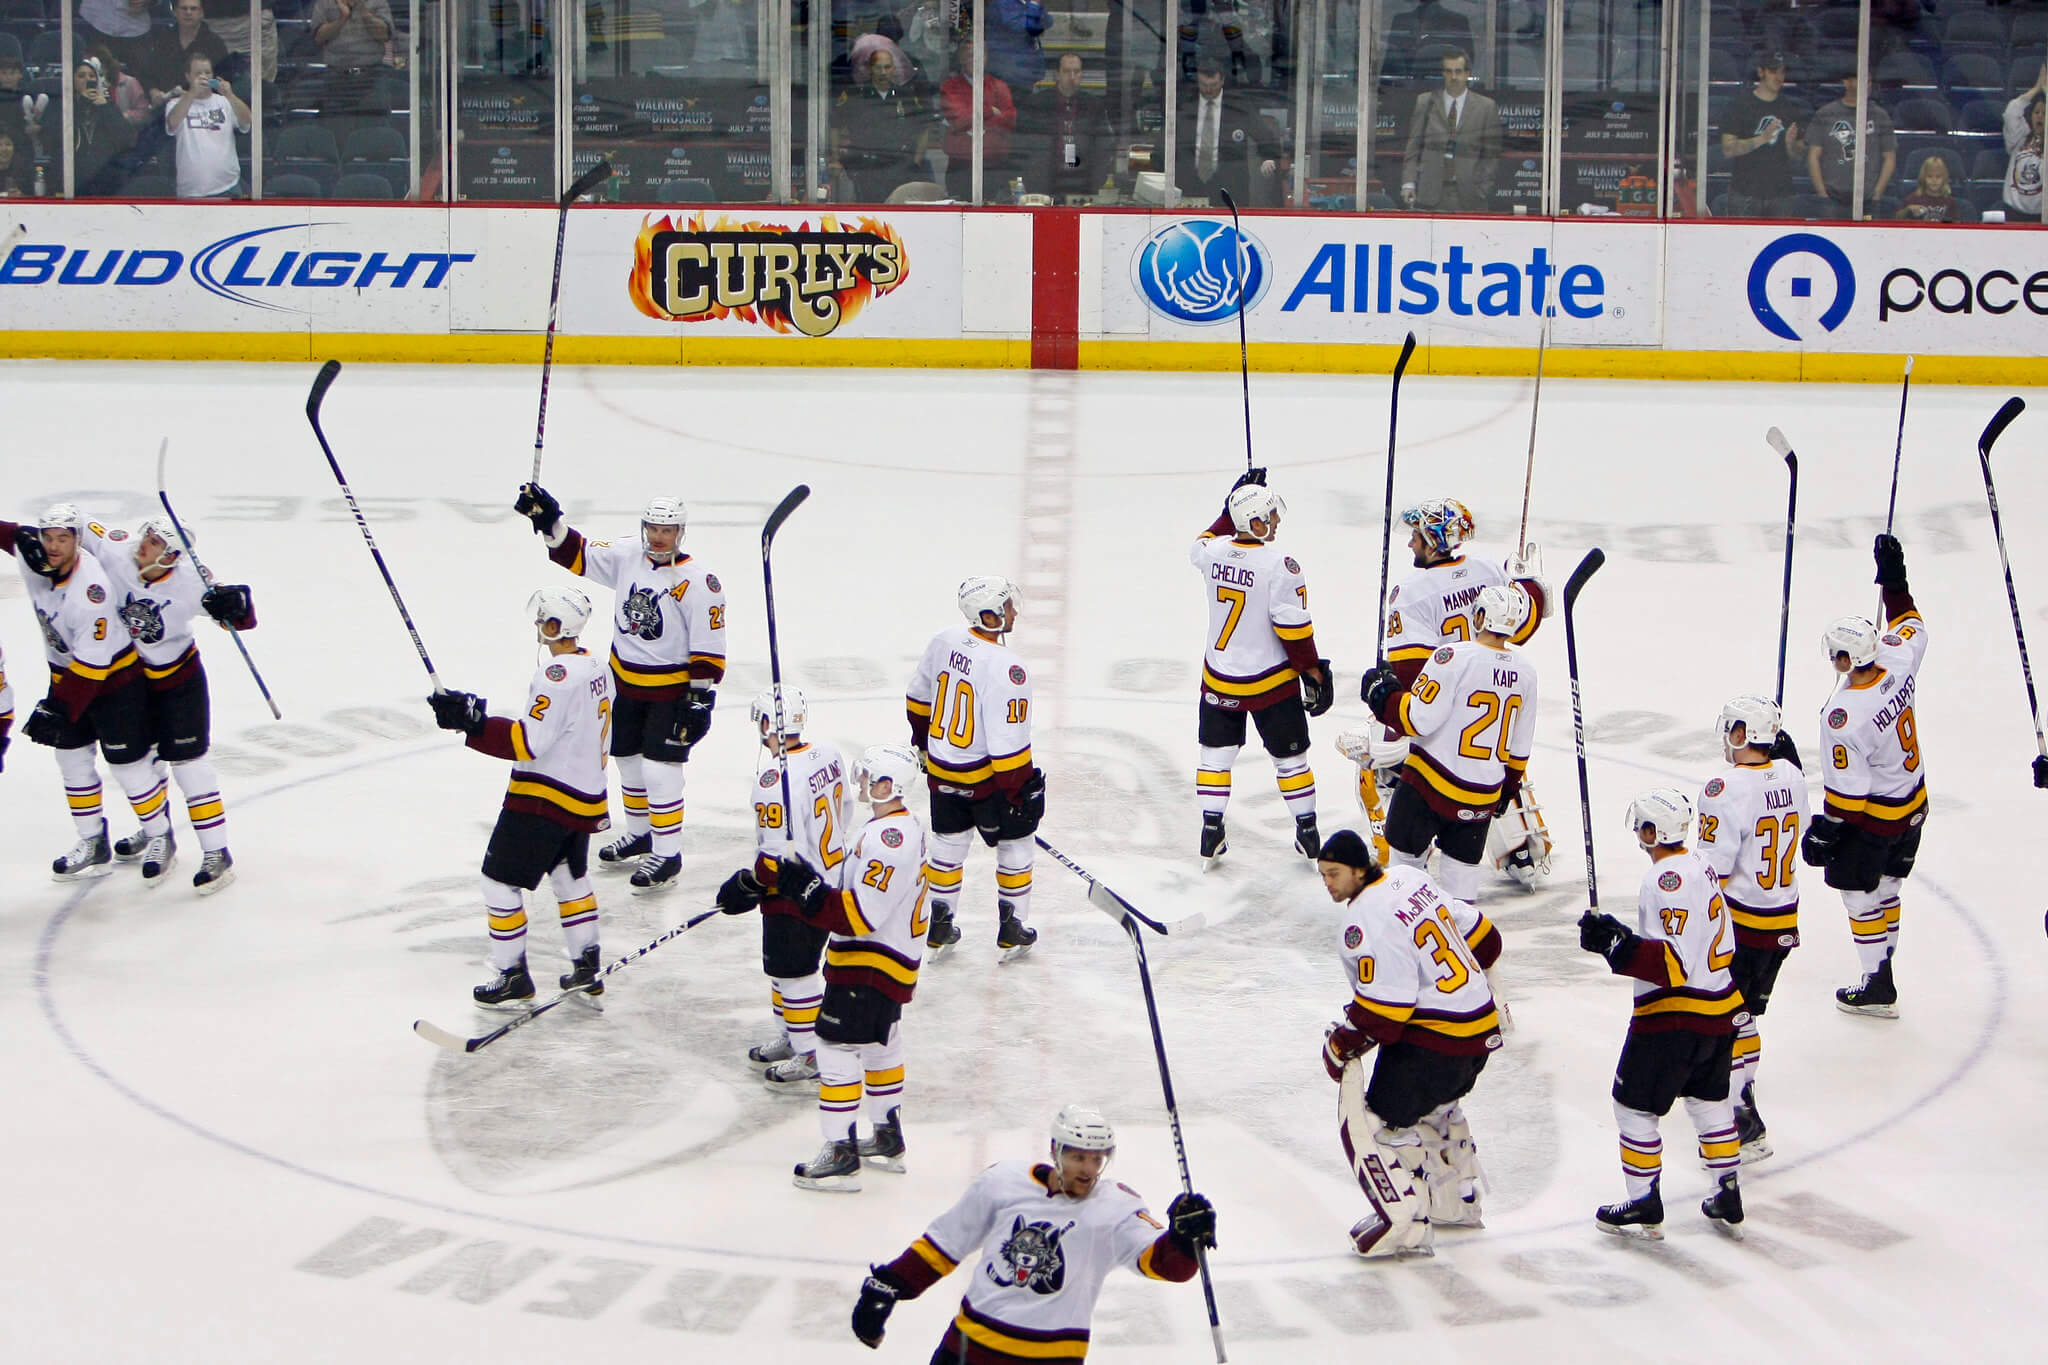 Chicago Wolves win victory hockey